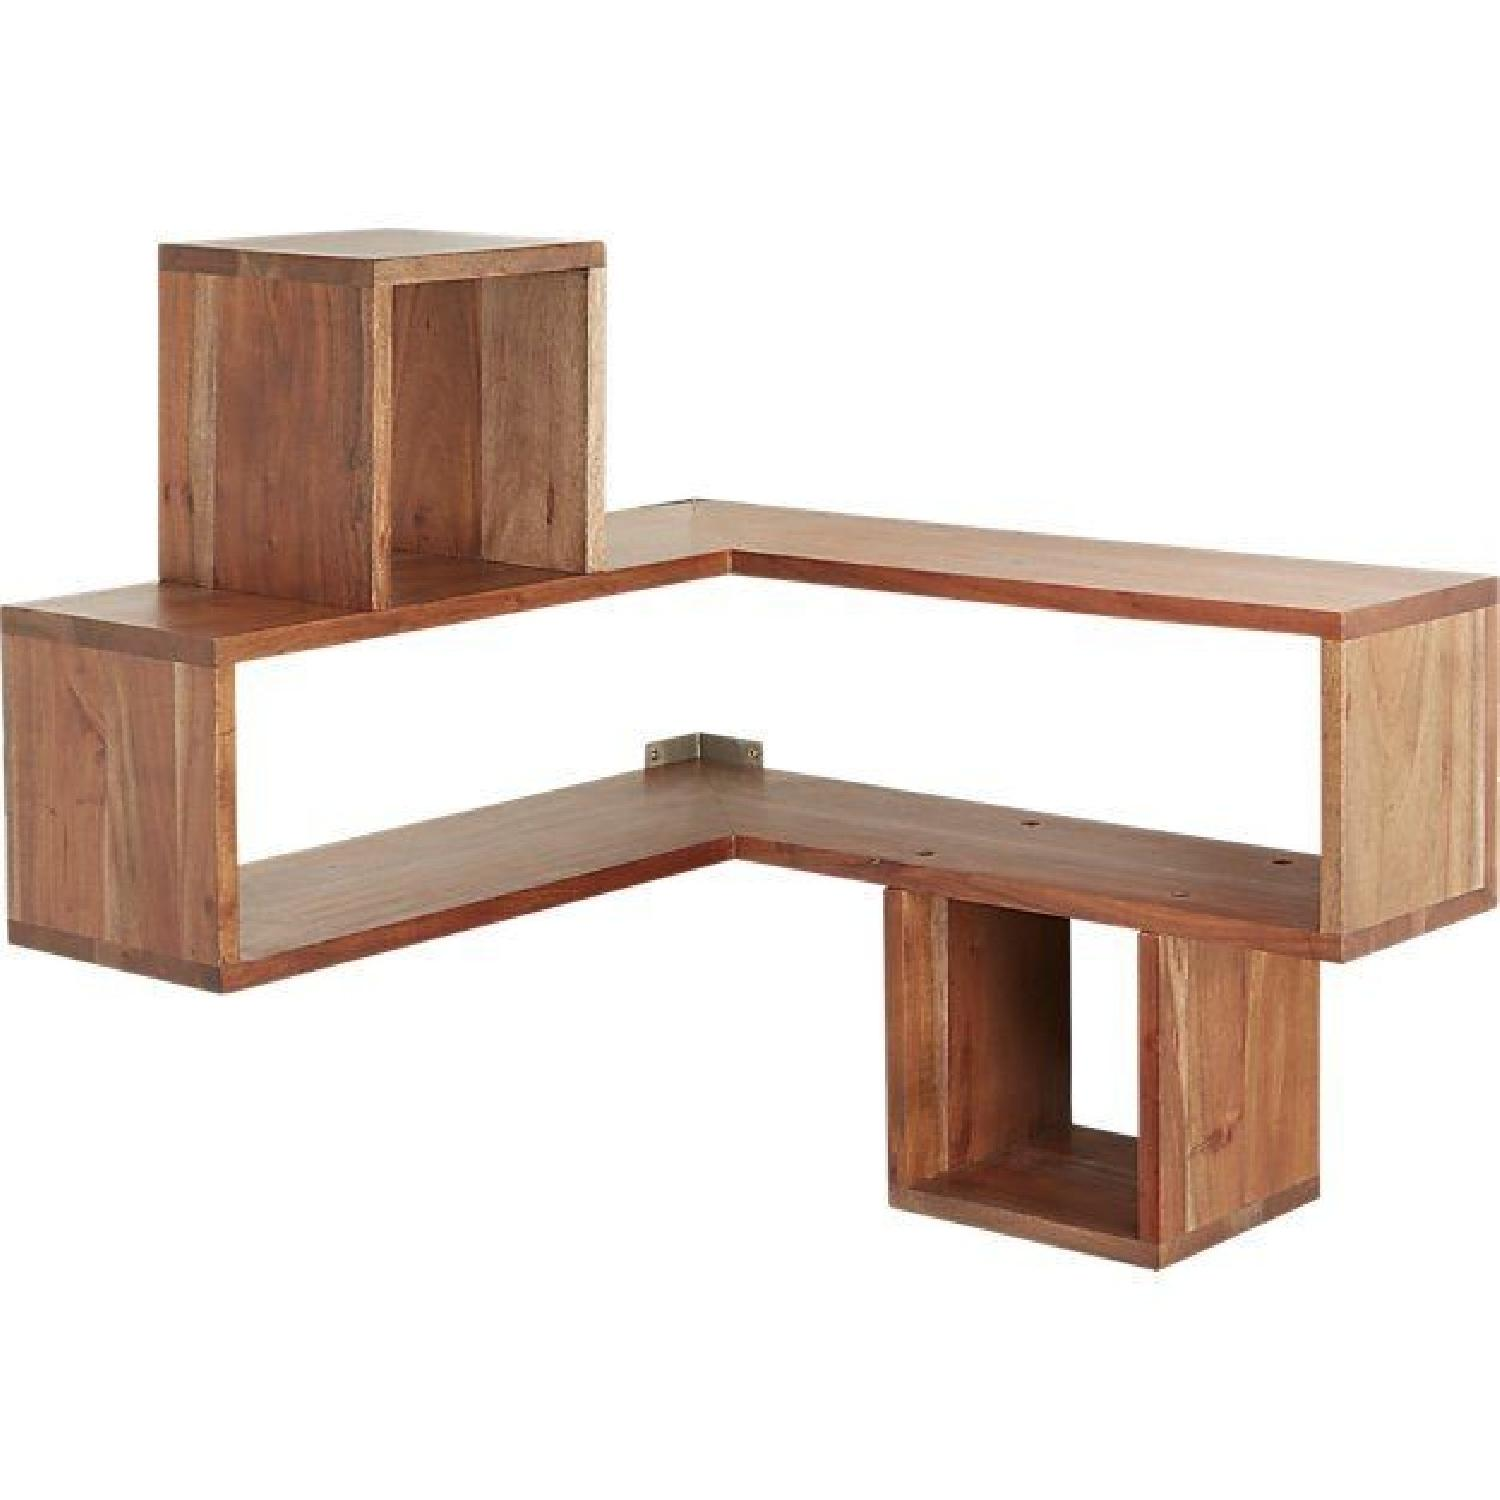 CB2 Corner Block Wall Shelf